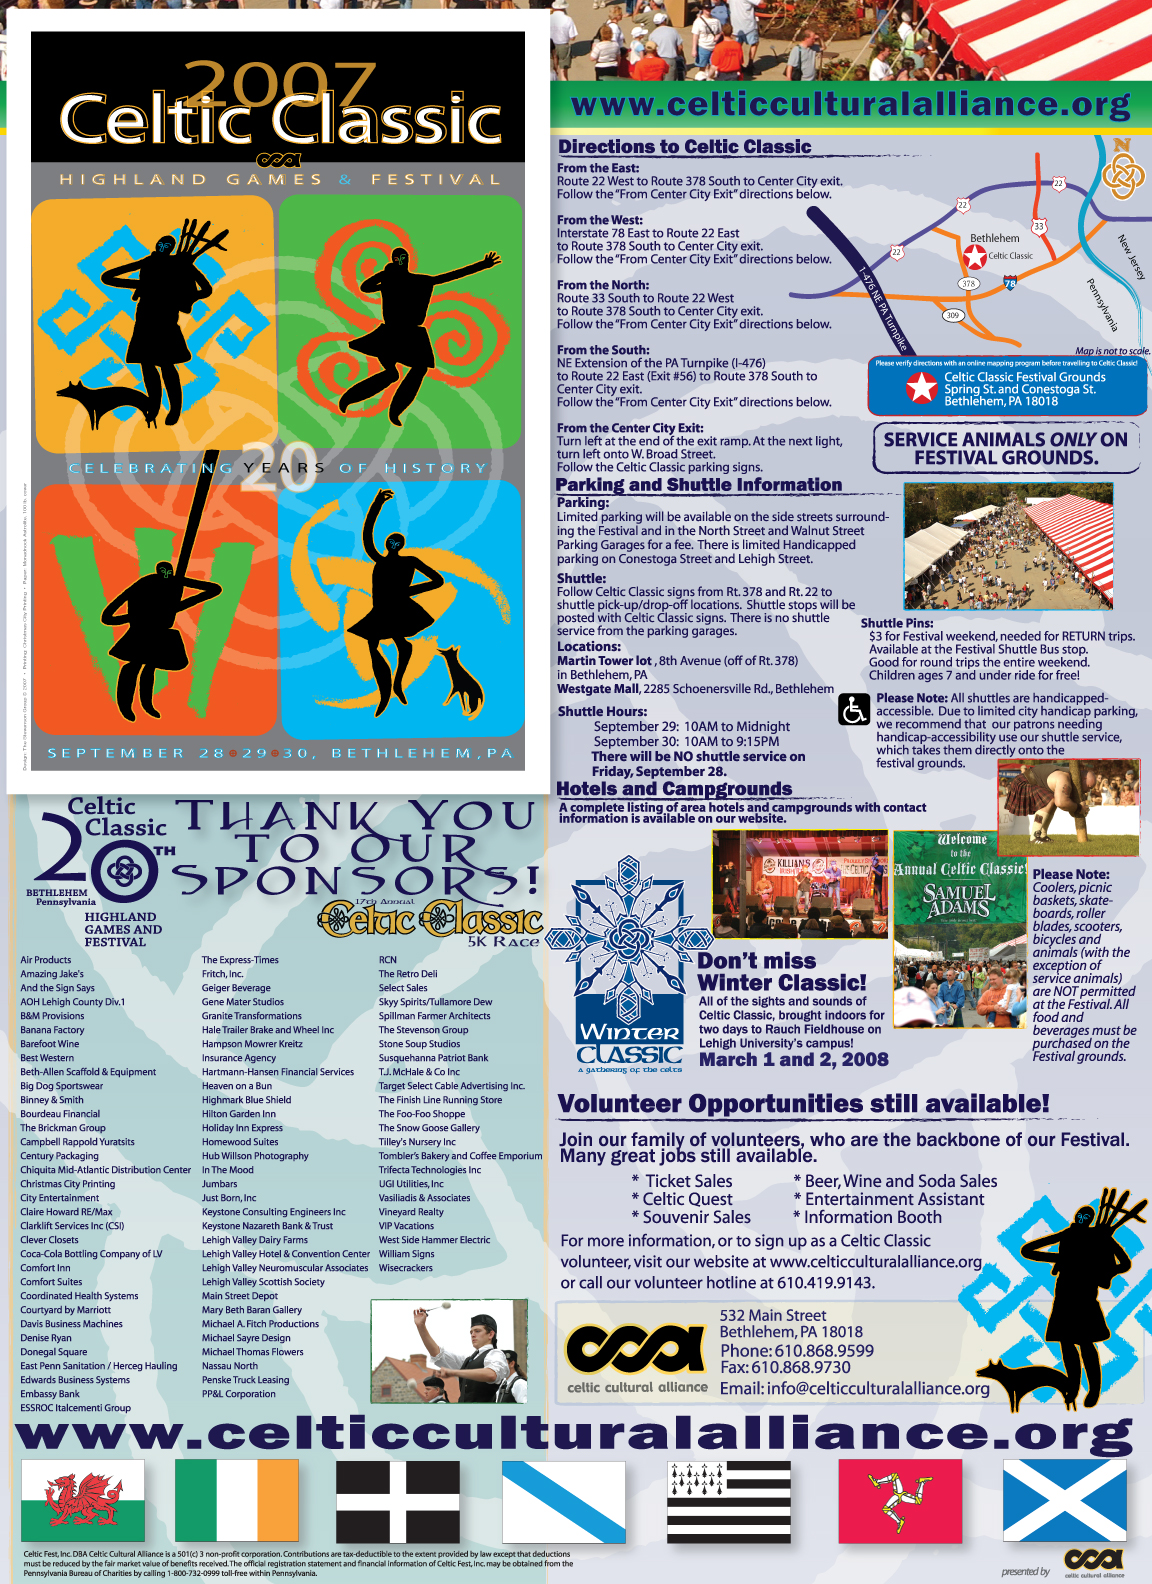 2007 CELTIC CLASSIC MAILER + FESTIVAL INFORMATION HANDOUT • 12.5 x 17.6 MAILER + POSTER  CLIENT: Celtic Cultural Alliance PLACEMENT: Piece was both mailed out to Celtic Classic's 10,000+ mailing list and handed out to the record amount of visitors (300,000 +) of the 20th Anniversary Celtic Classic in 2007.